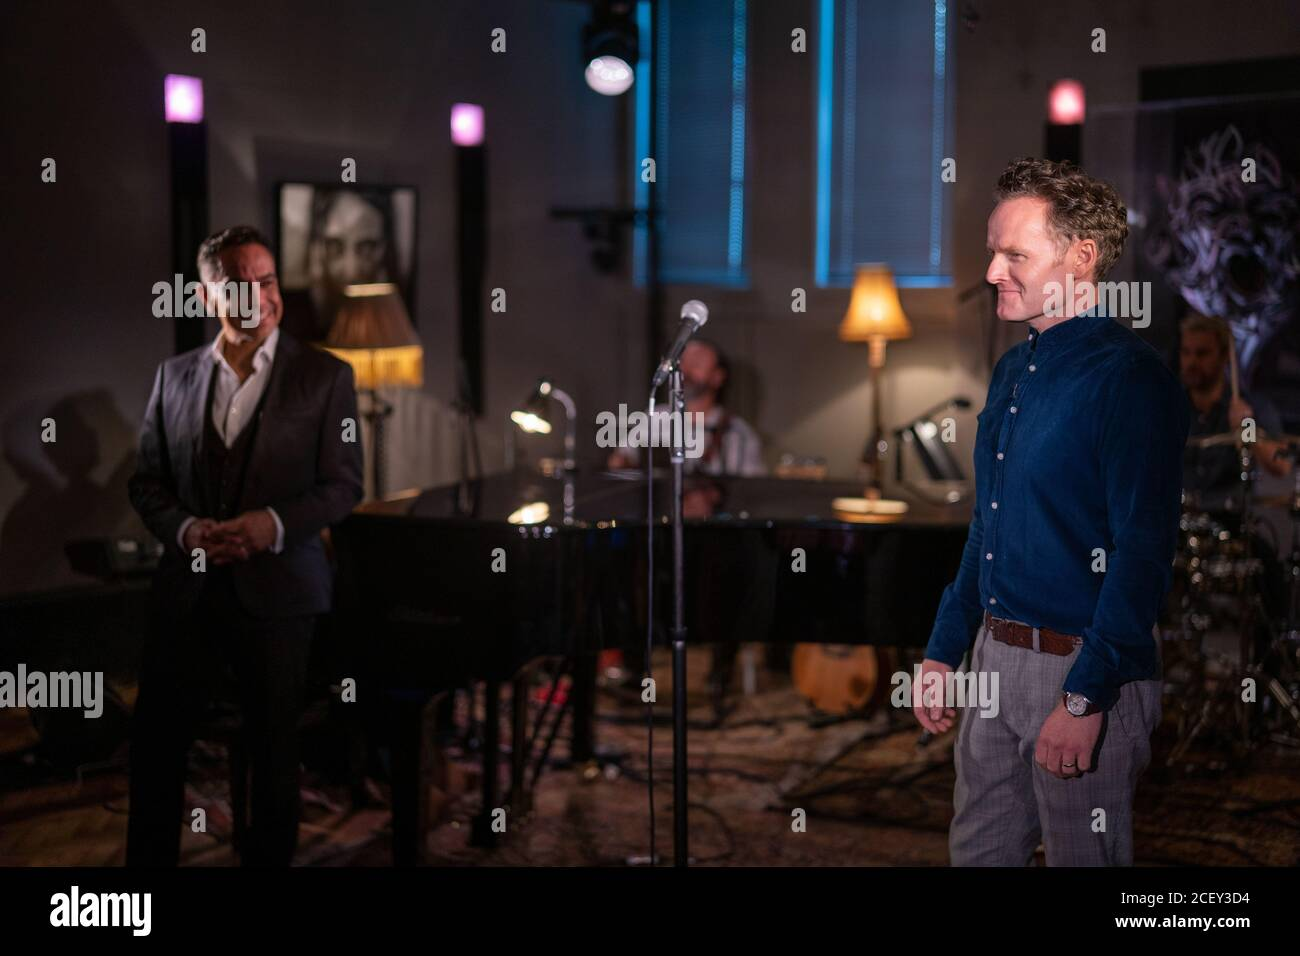 Joe Stilgoe performing live at L-Acoustics Creation in London as part of West End Unplugged, an initiative to raise money for various charities suppor Stock Photo